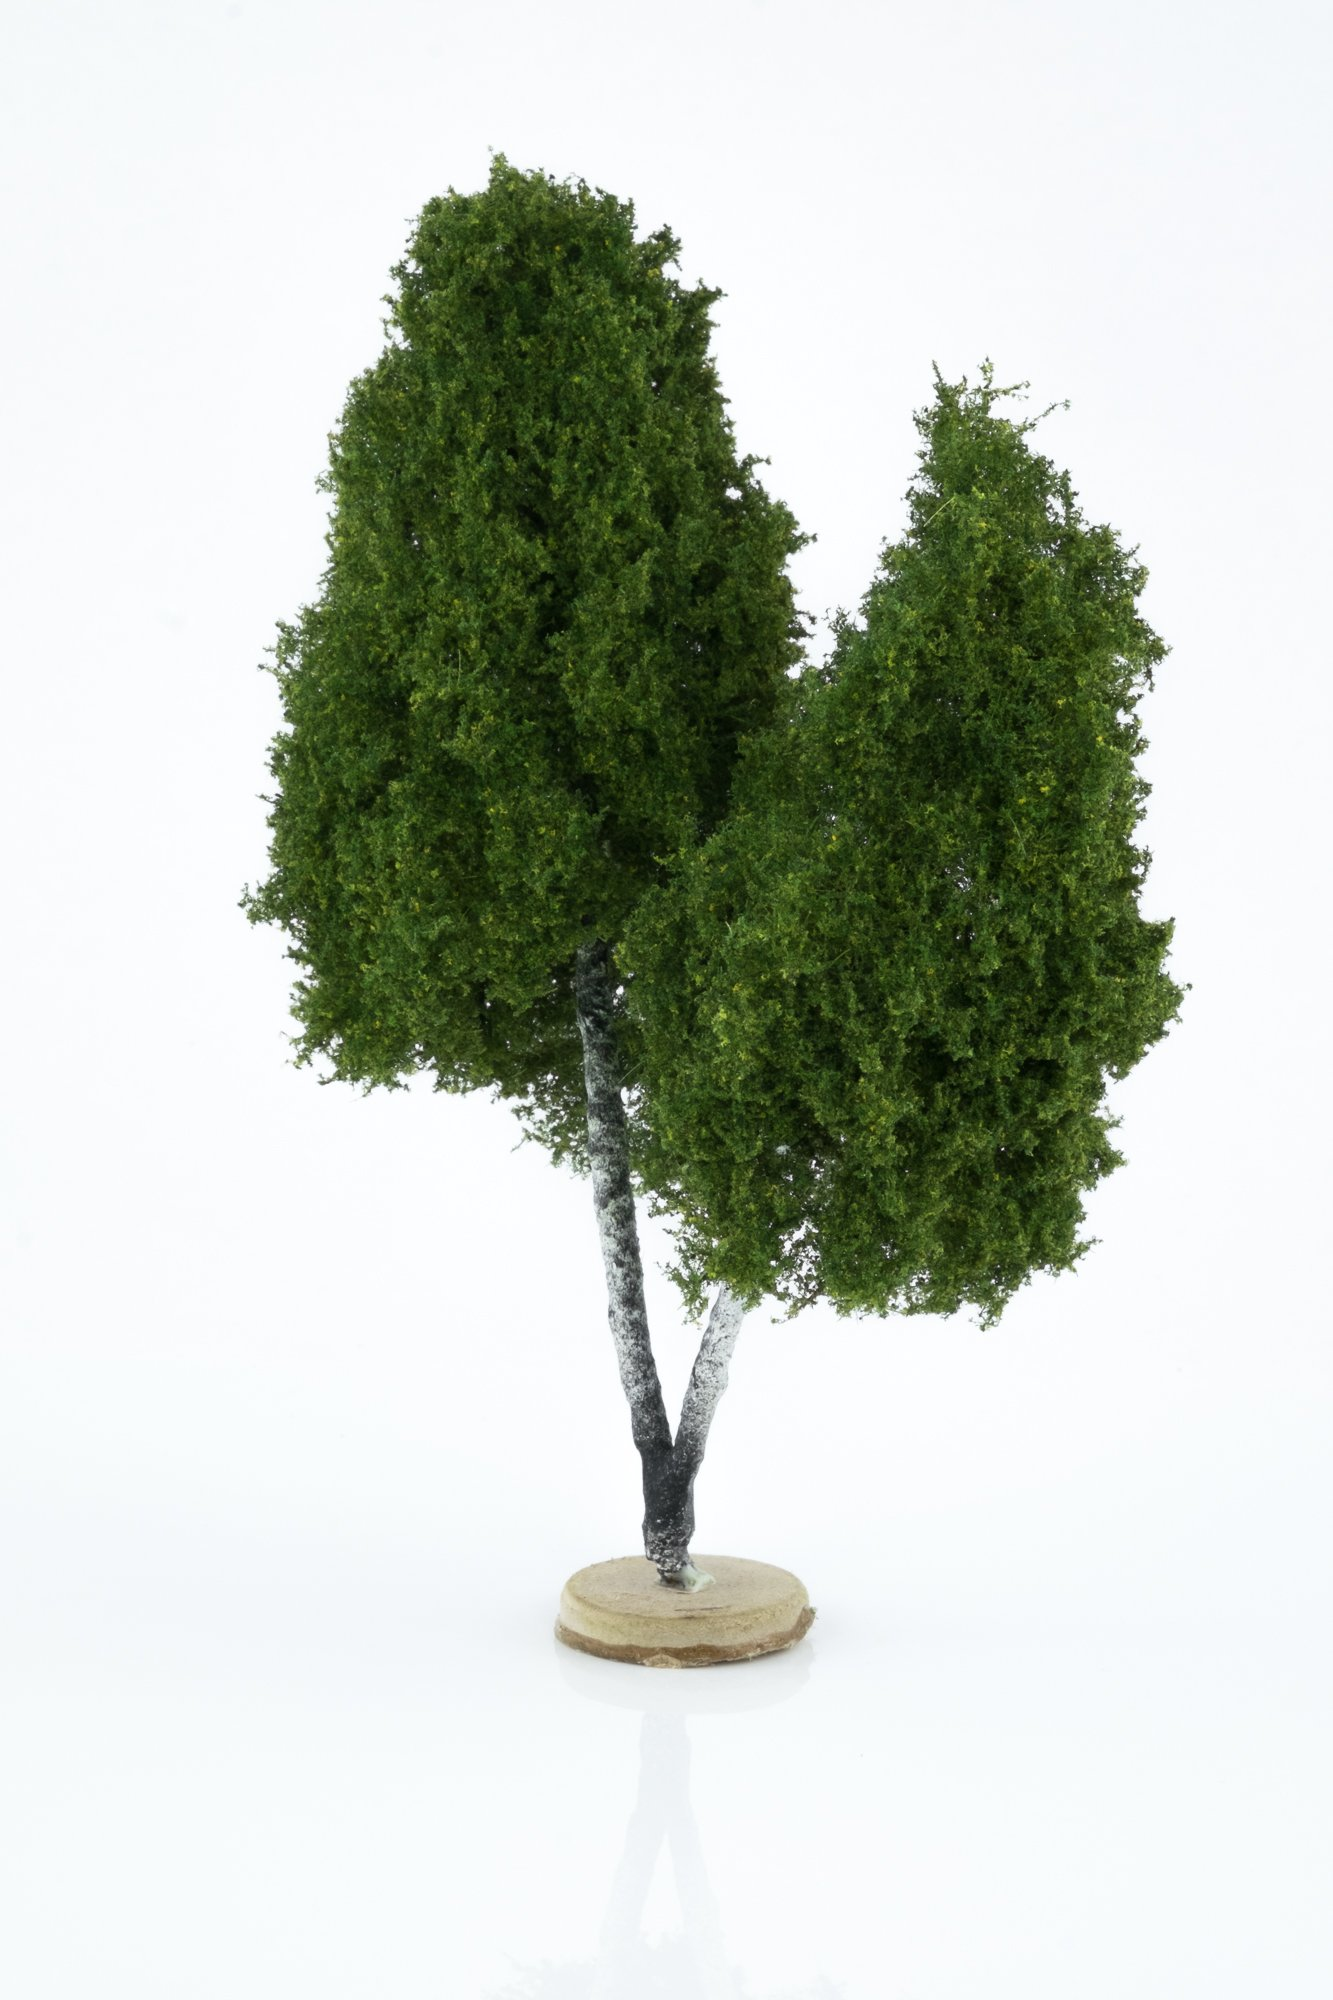 Hand-made, double, birch tree model. Size between 18 and 20 cm. Made from high quality model supplies by Primo Models.